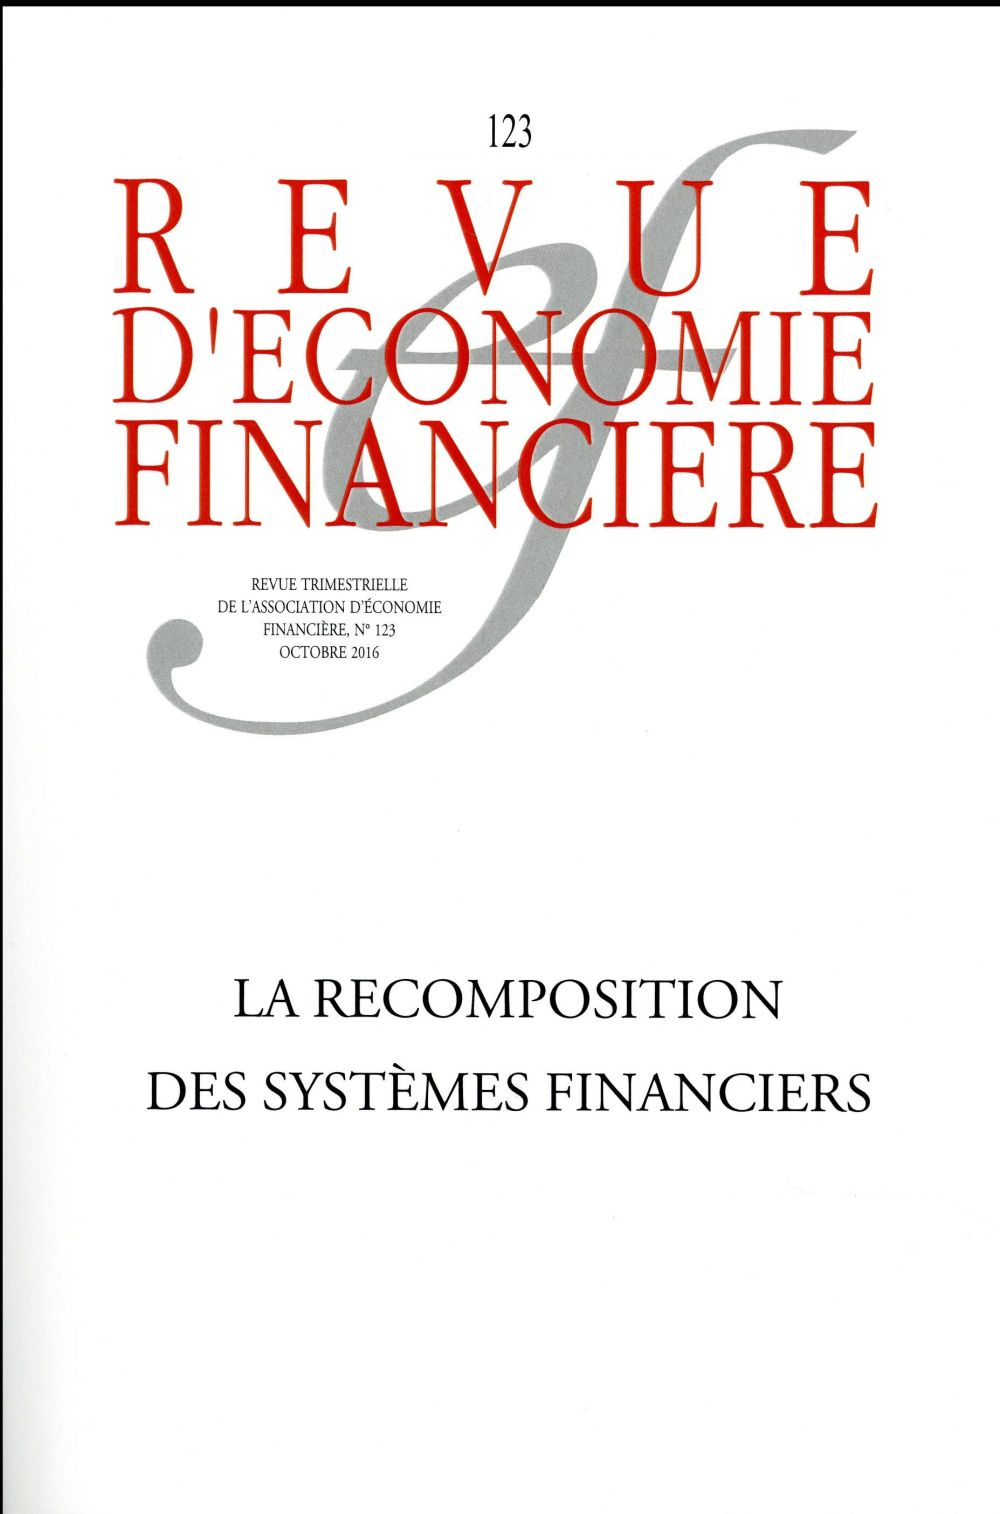 REVUE D ECONOMIE FINANCIERE - RECOMPOSITION DES SYSTEMES FINANCIERS